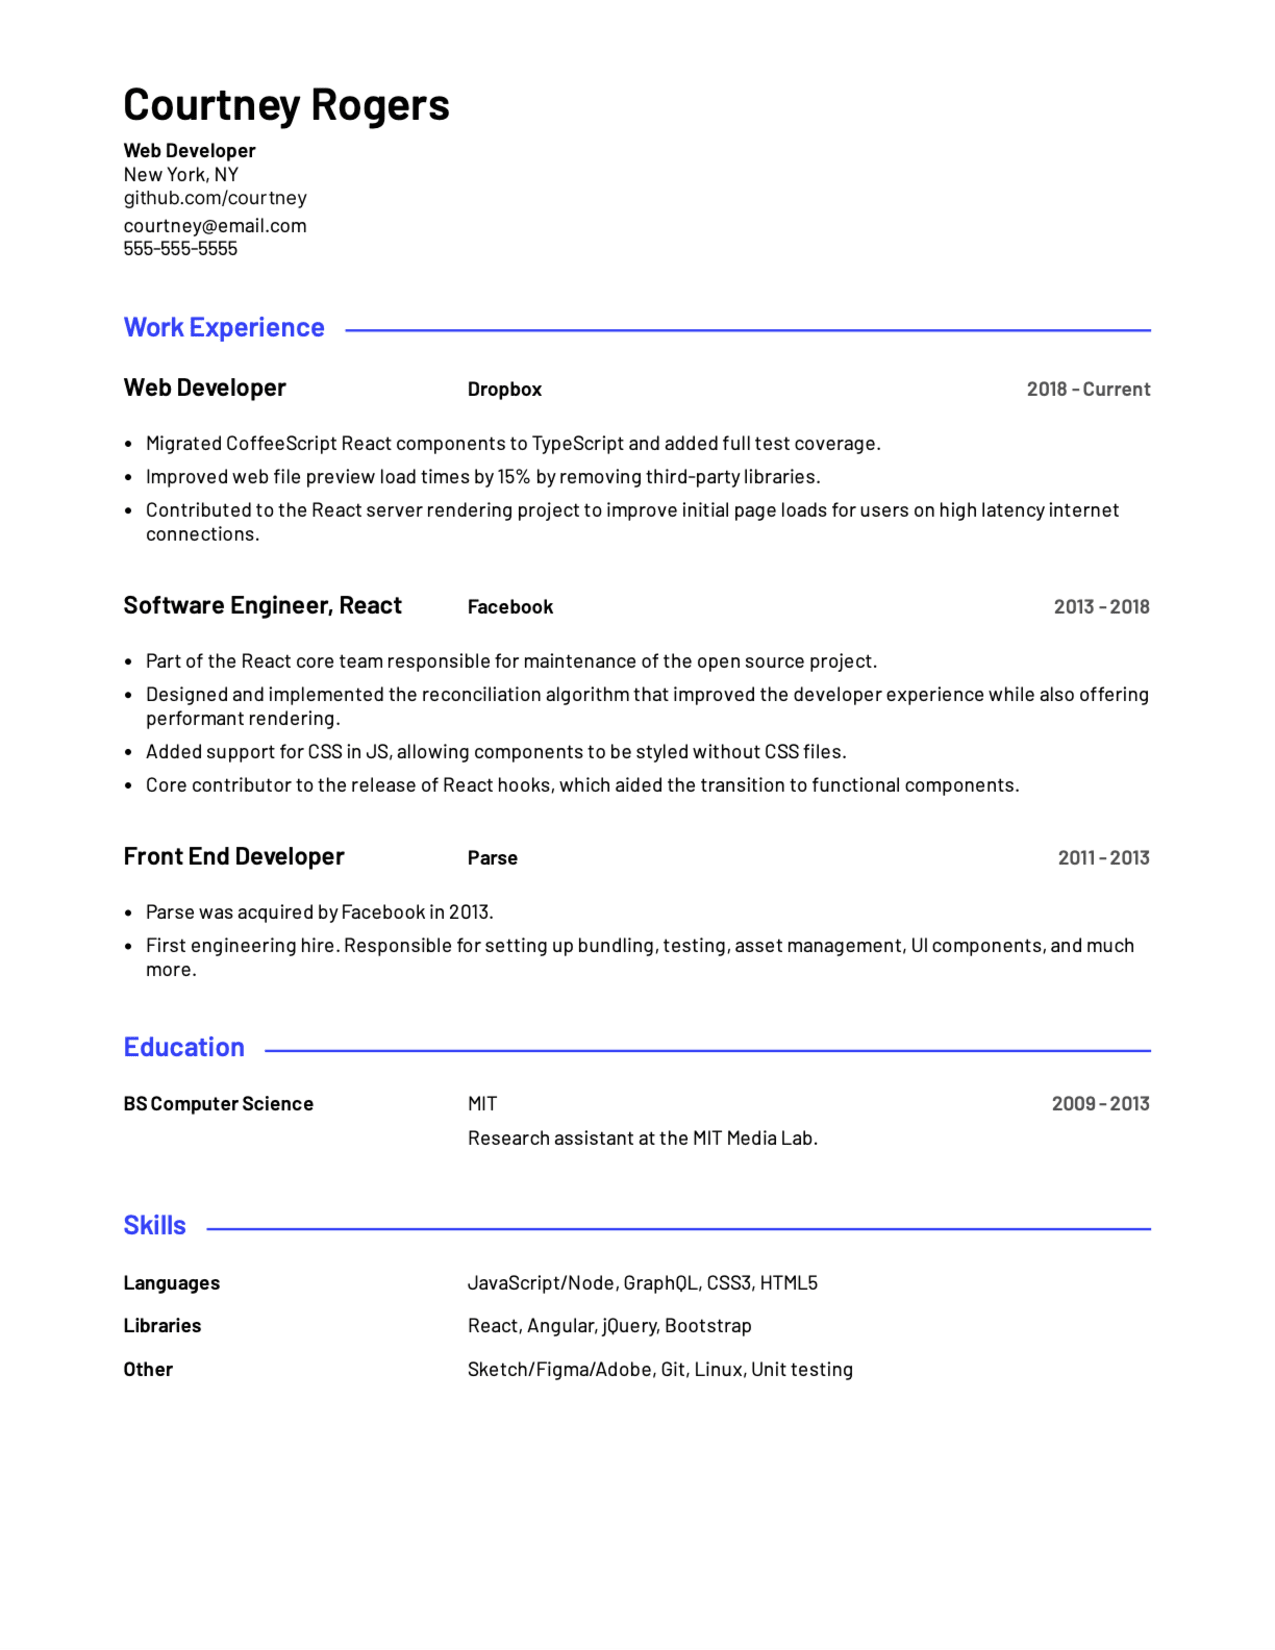 Simple Web Developer resume sample.